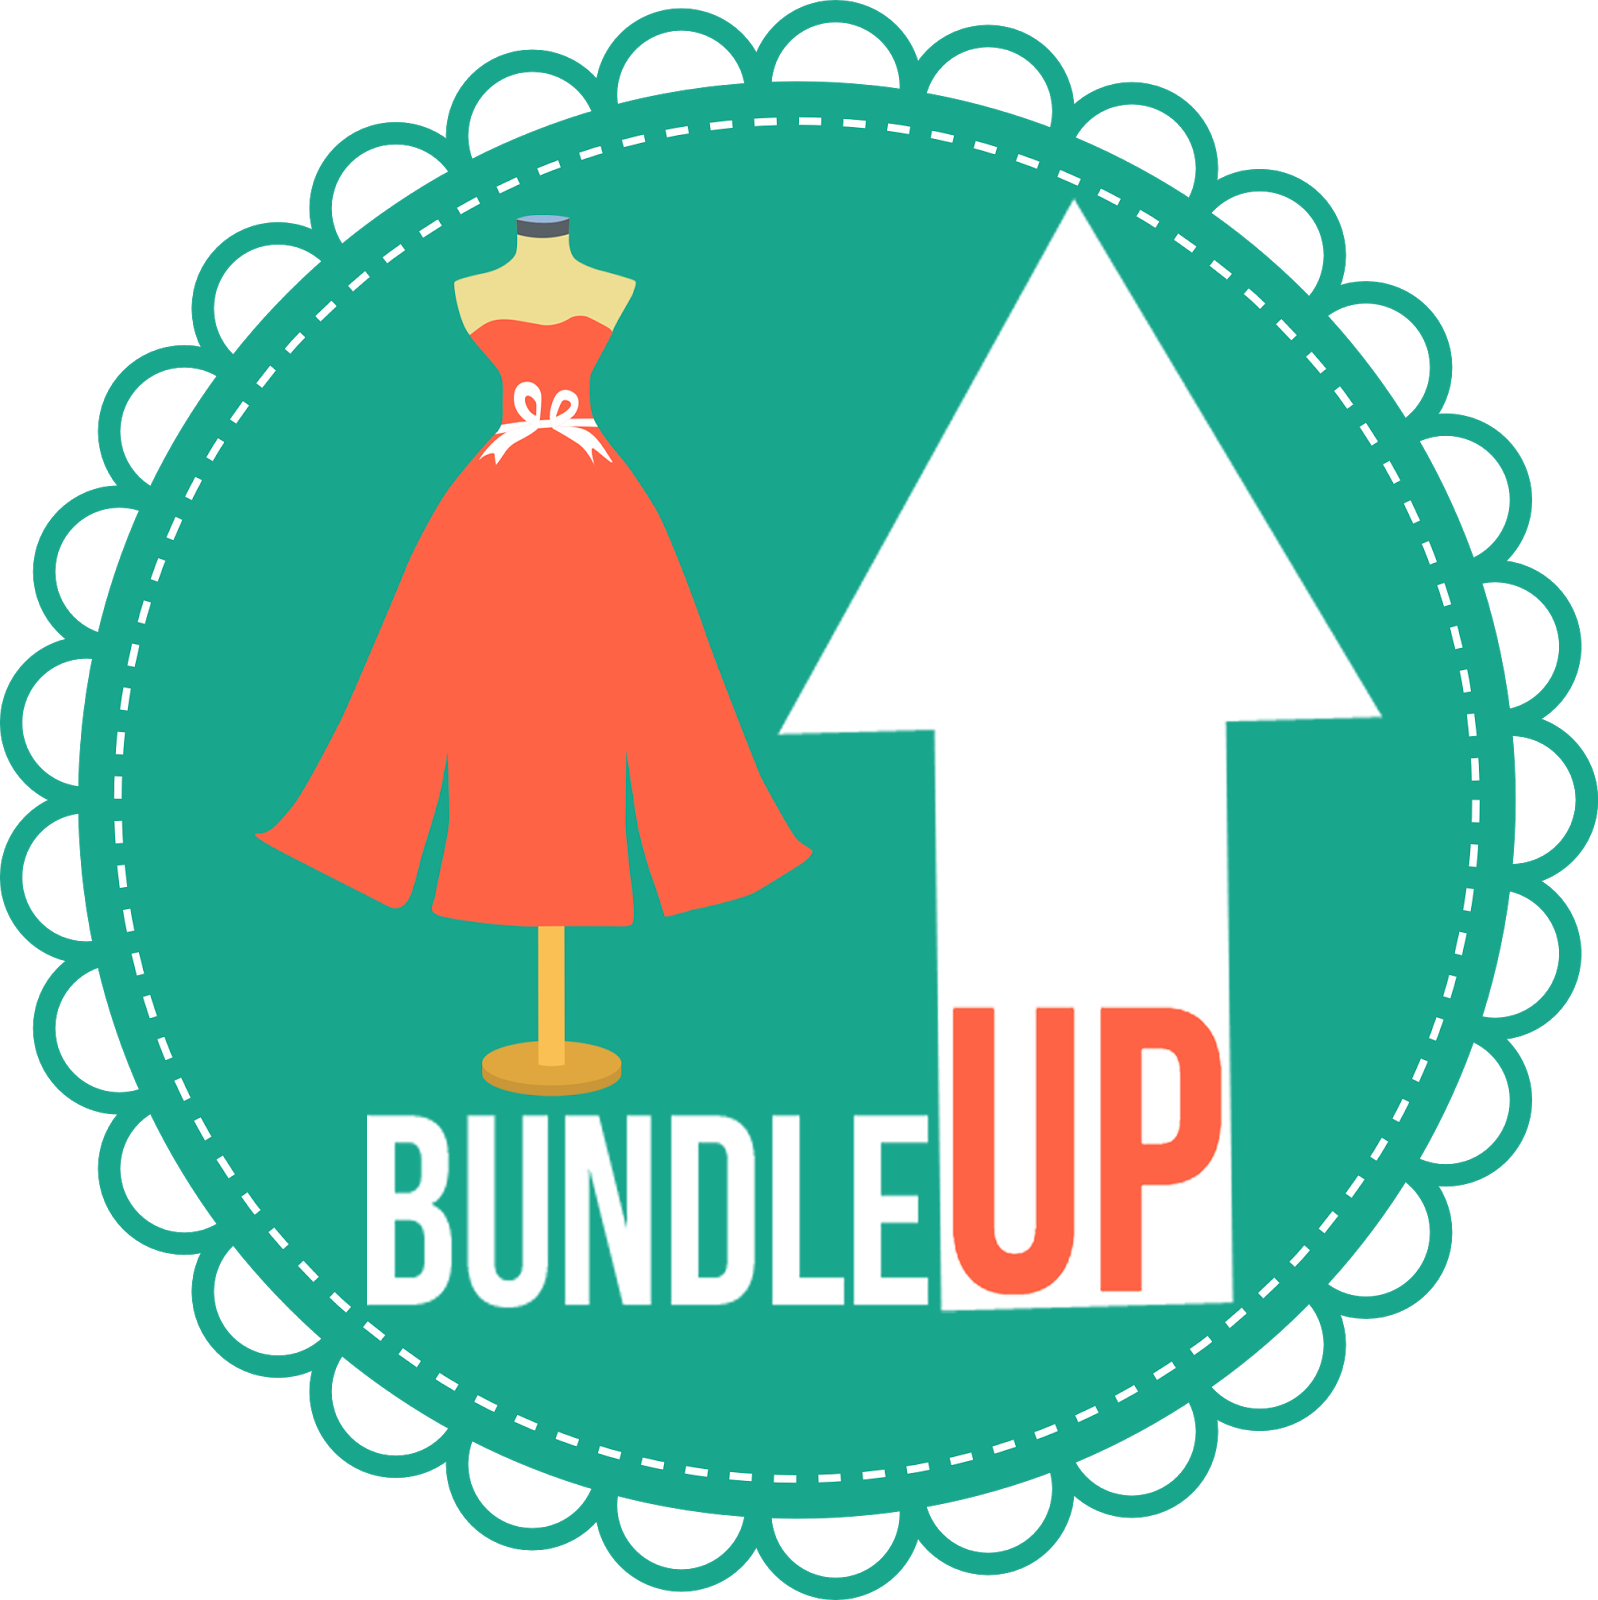 Excited clipart great news. Bundle up buttercup or